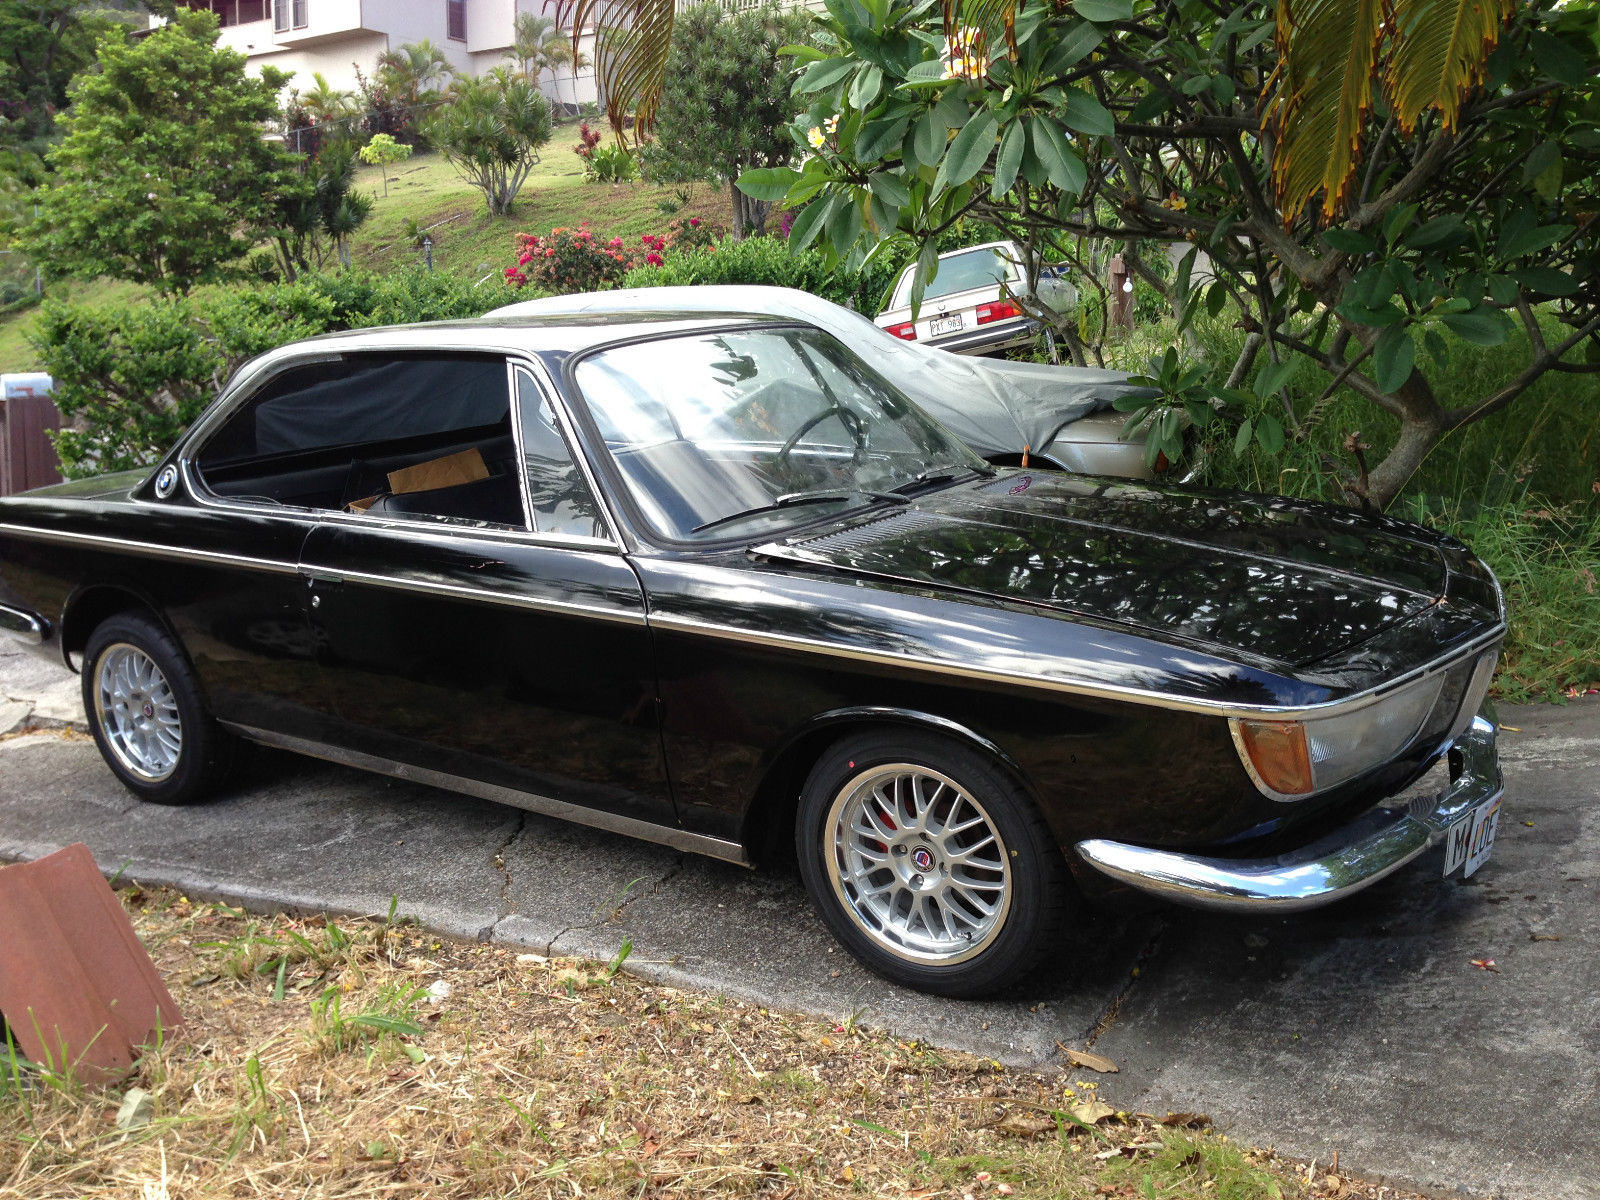 BMW 2002 Tii For Sale >> 1967 BMW 2000 CS Coupe E9 Clean 94k Miles Rare Not 2002tii Side Draft Solex - Classic BMW Other ...